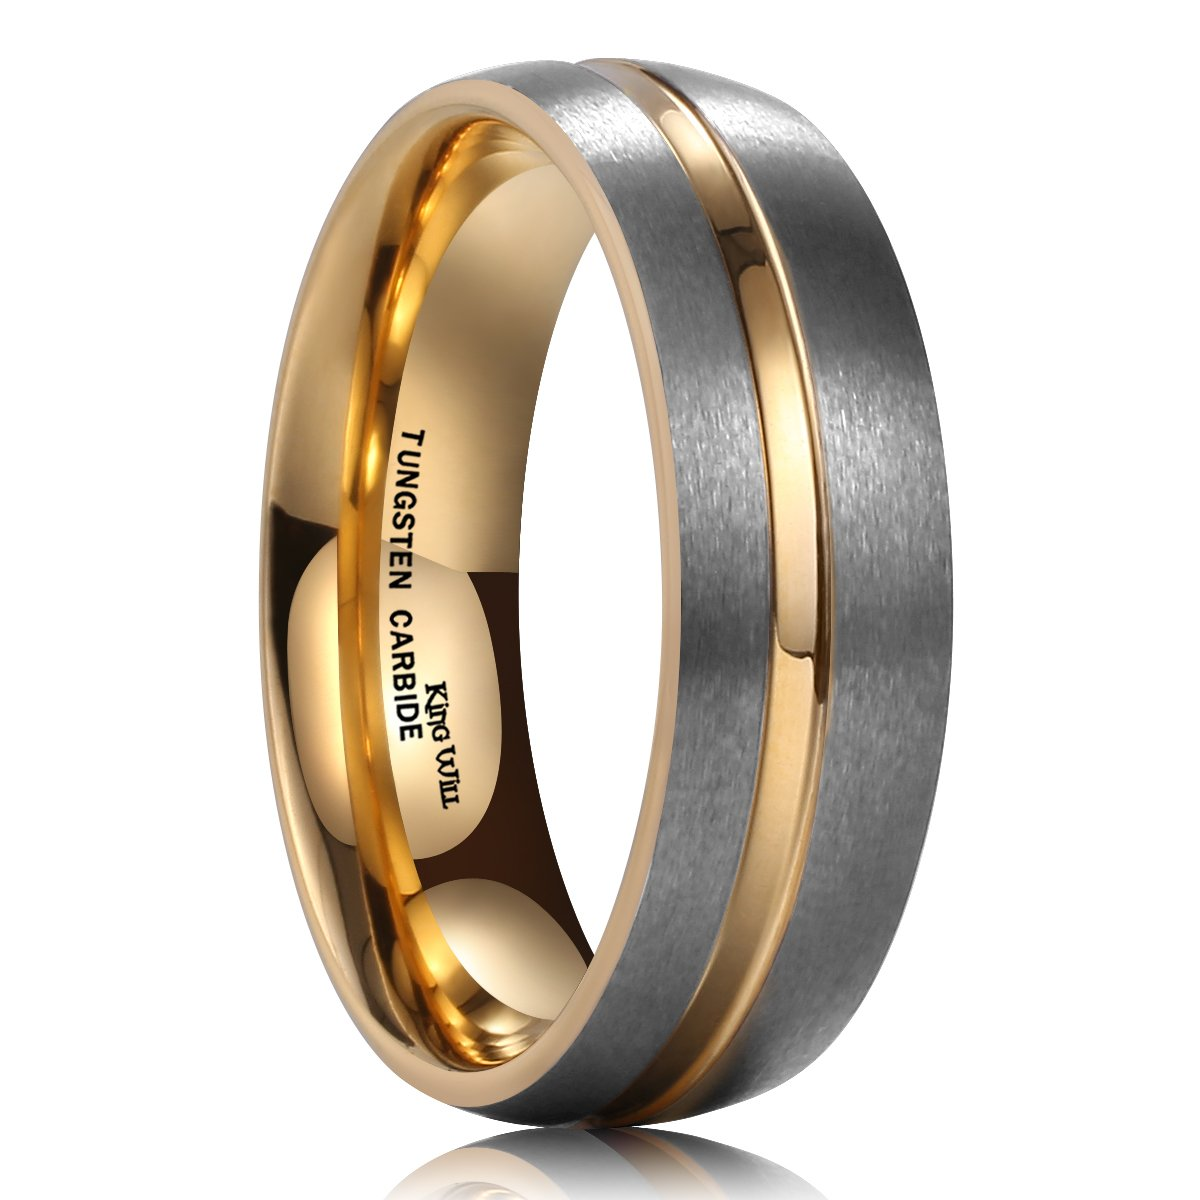 King Will DUO 7mm Tungsten Carbide Ring 18K Gold Plated Thin Side Gold Groove Dome Wedding Band for Men(10)